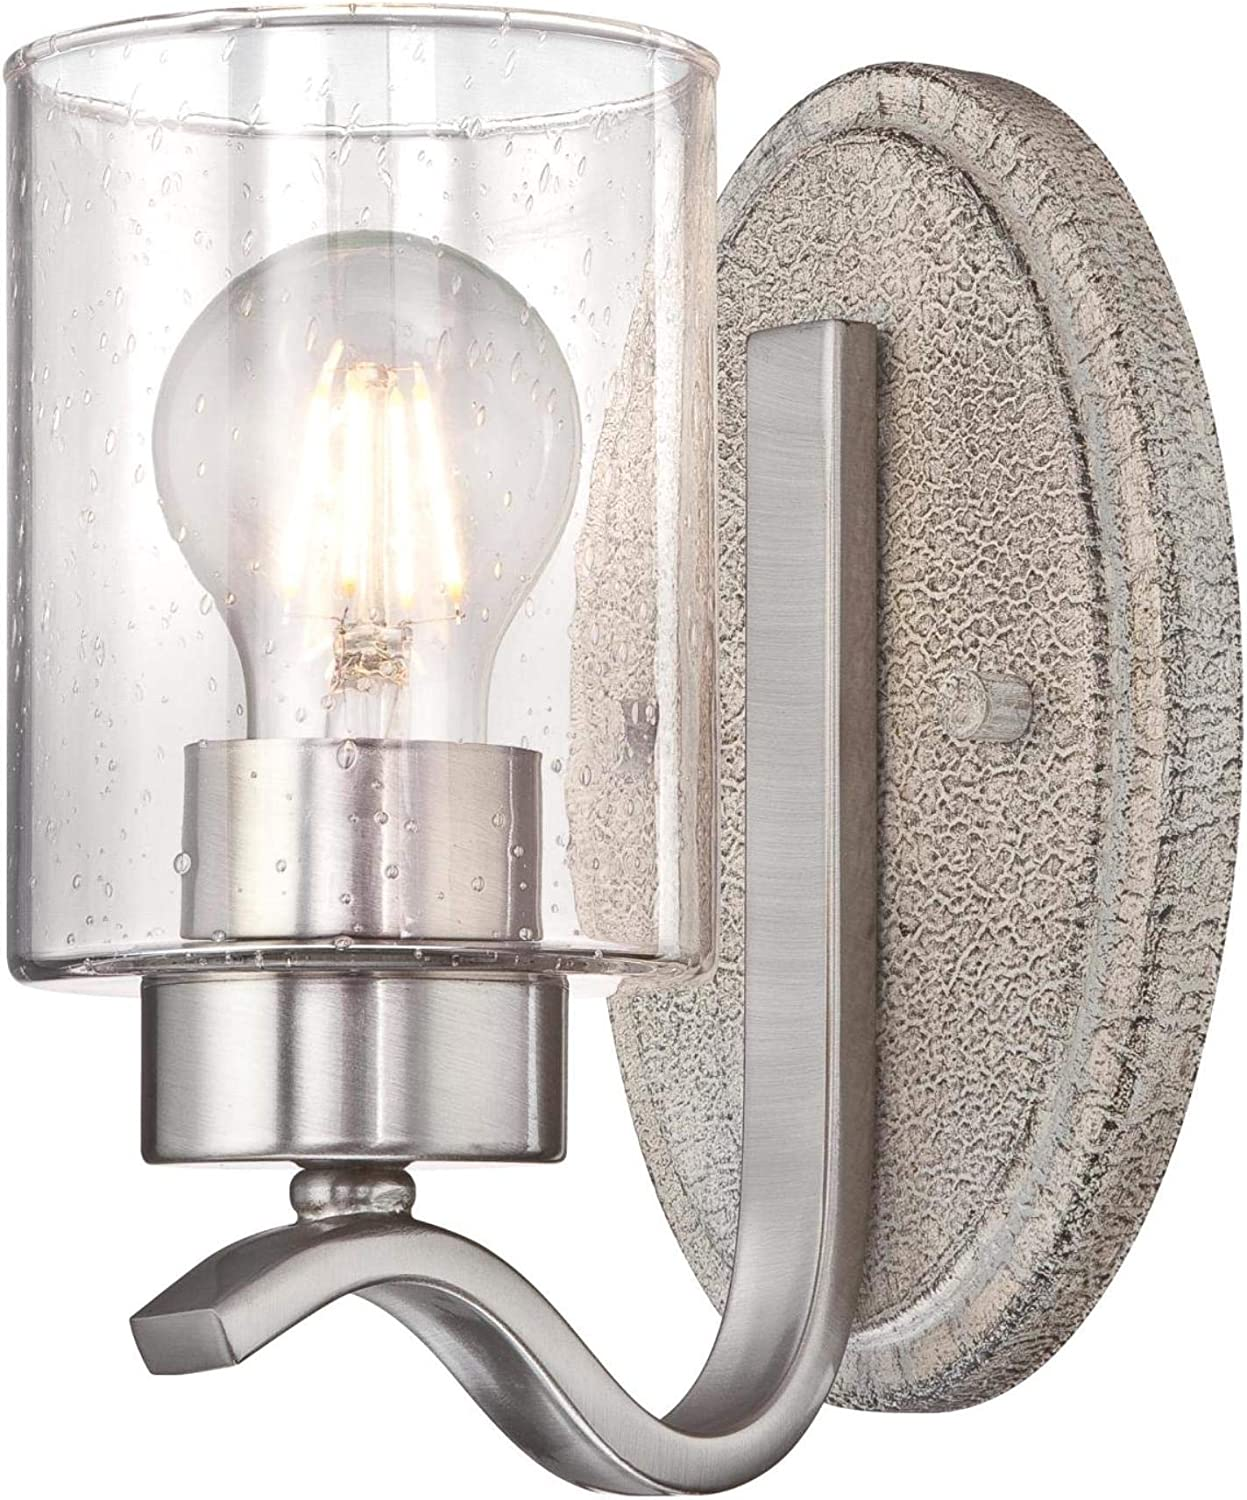 Westinghouse Lighting 6577000 Barnwell One-Light Indoor Wall Fixture, Antique Ash and Brushed Nickel Finish with Clear Seeded Glass